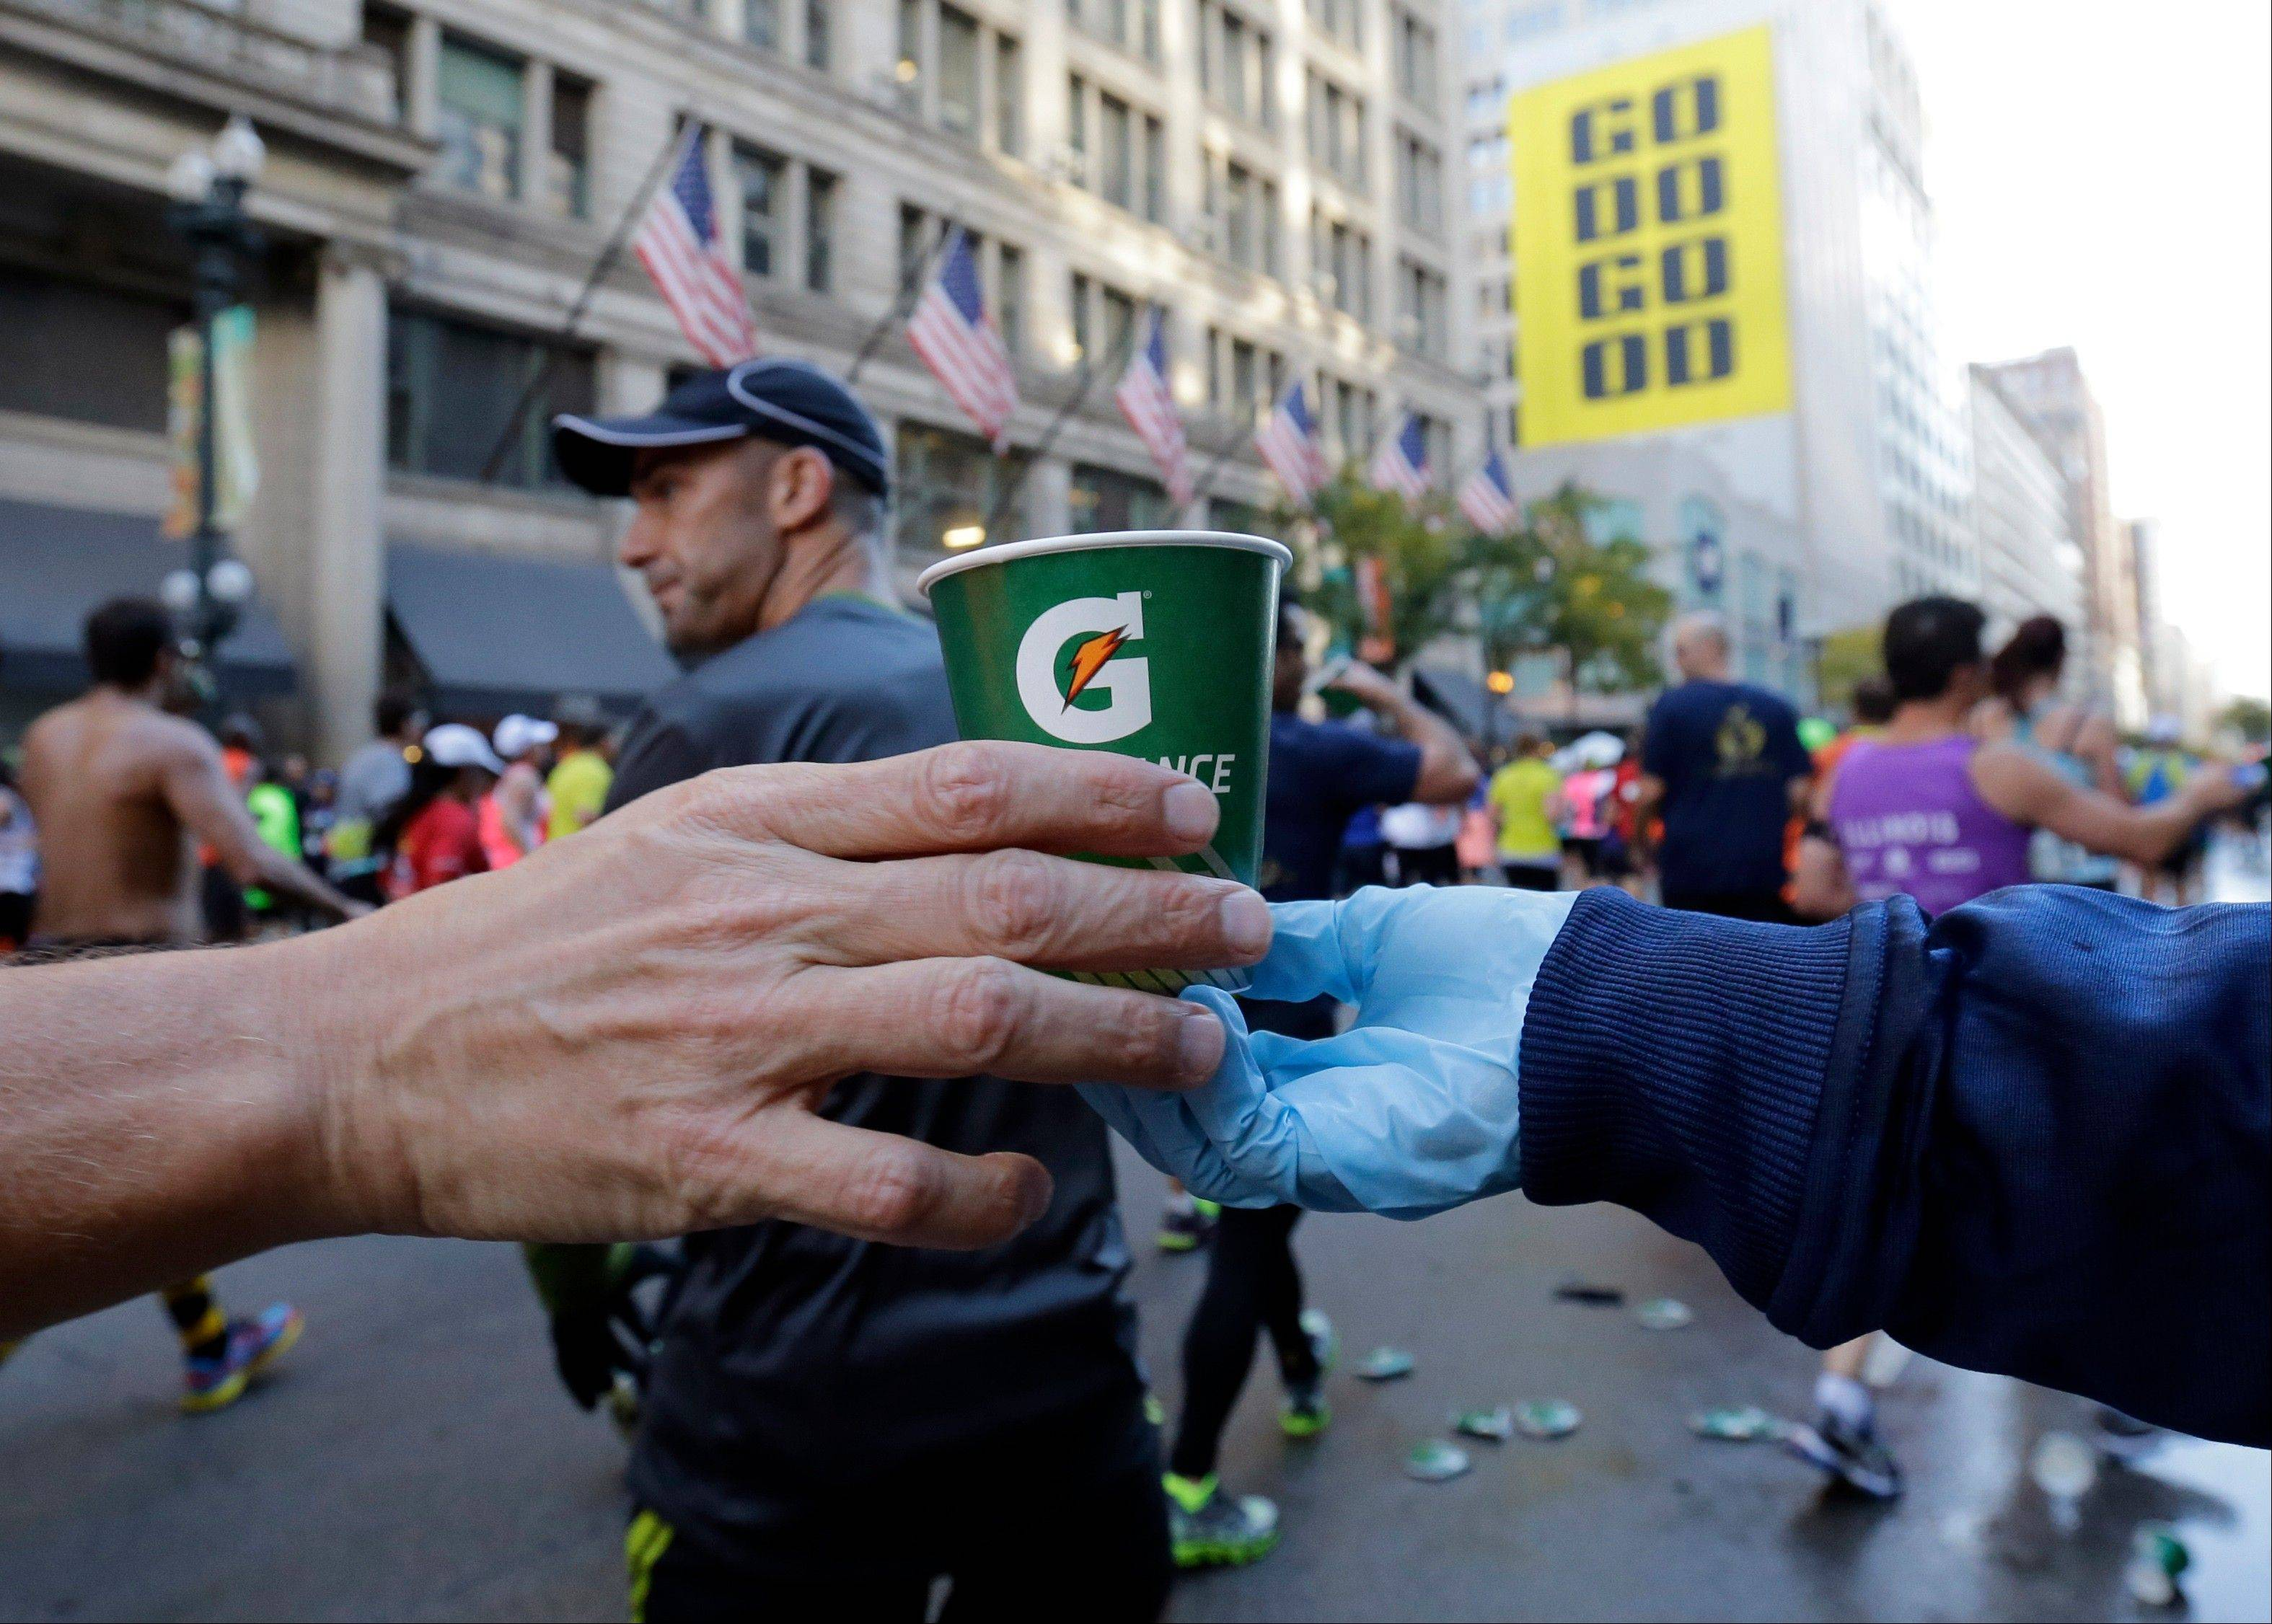 A runner grabs water at an aid station during the annual Chicago Marathon in Chicago, Sunday, Oct. 13, 2013.